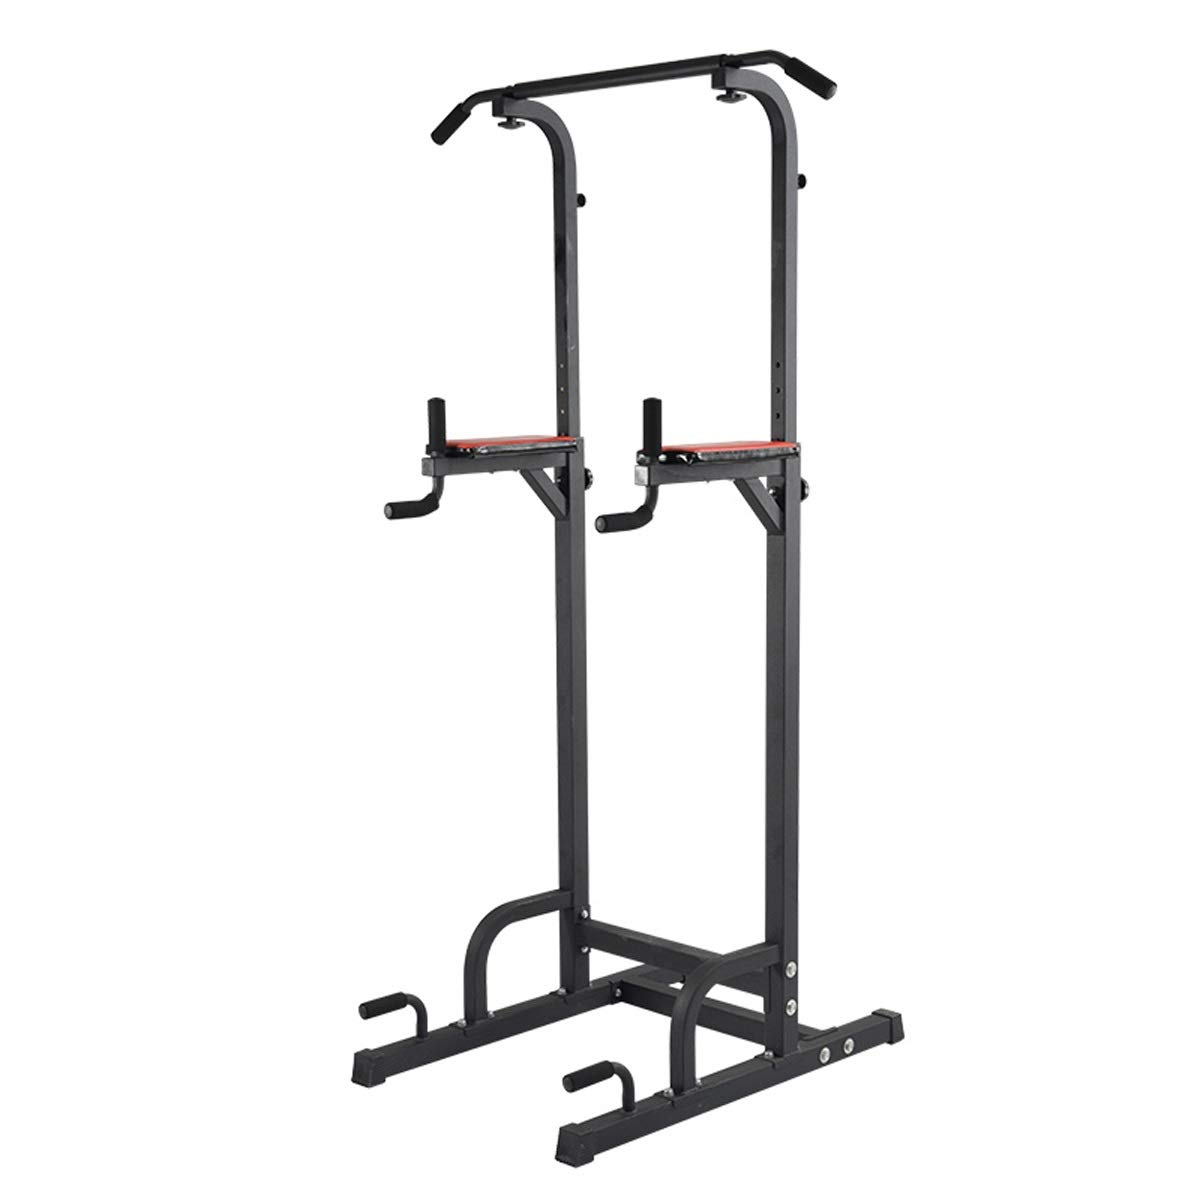 Baianju Pull-ups Indoor Single and Double Poles Exercise Training Machine Home Multi-Functional Fitness Equipment Abdominal Exercise by Baianju